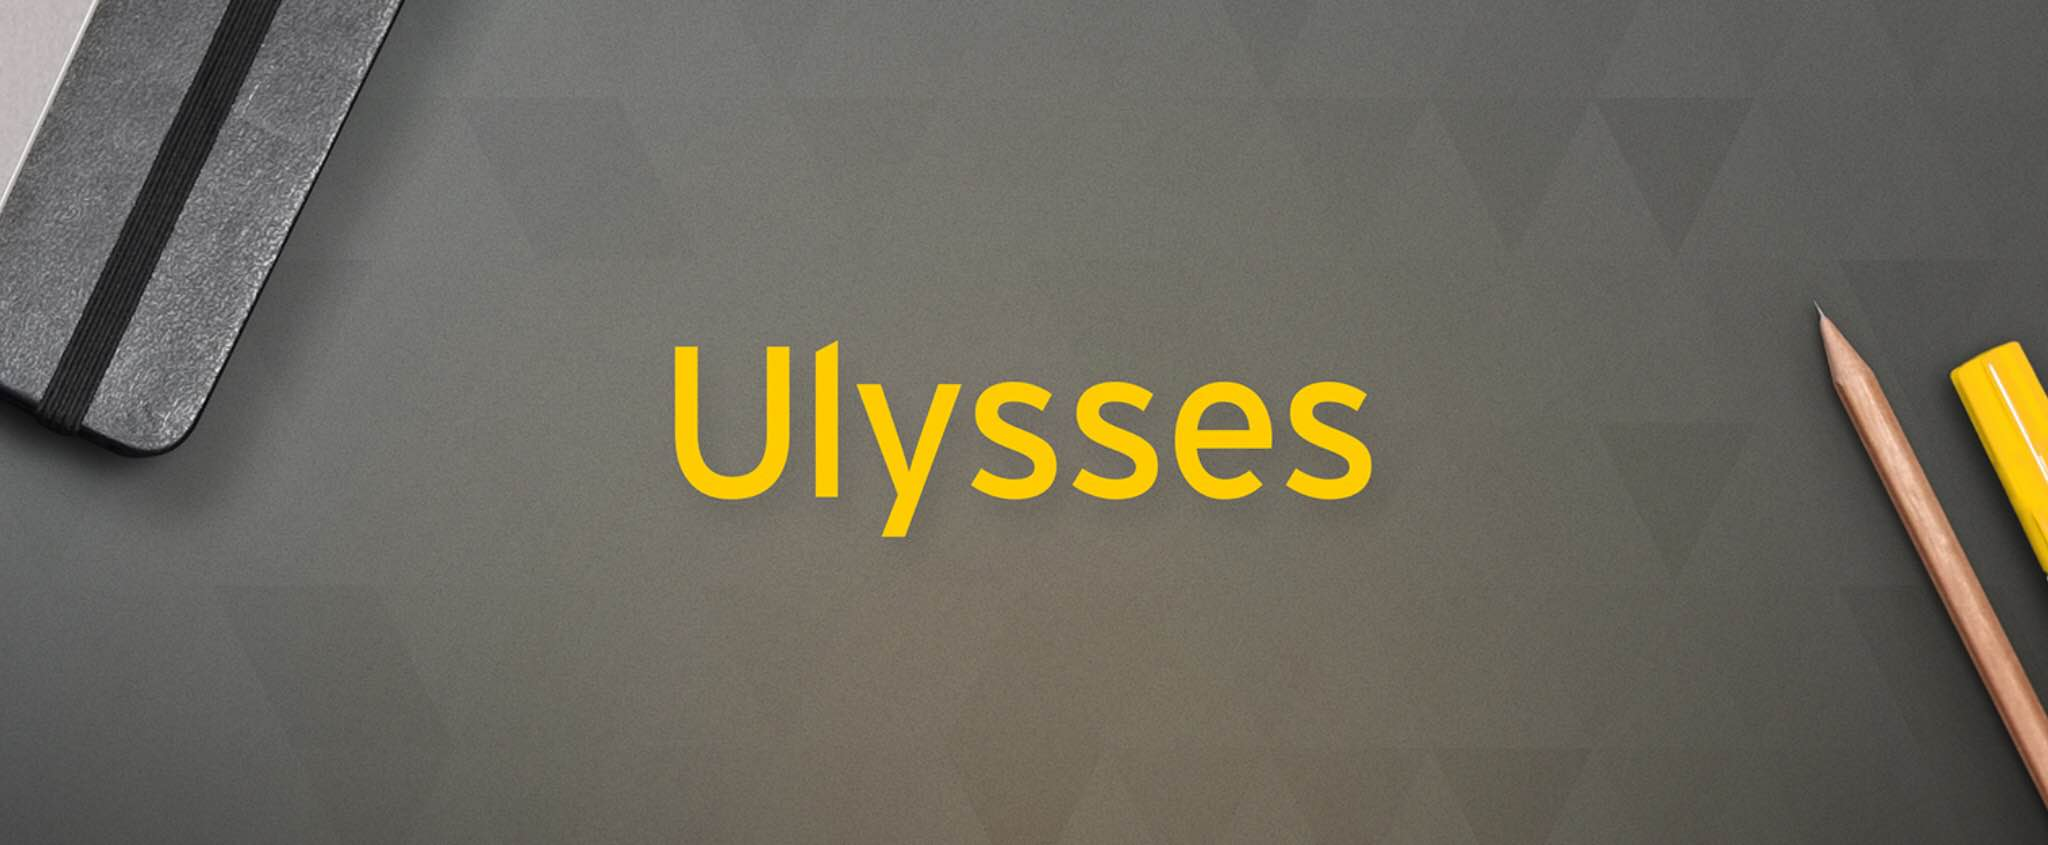 app-subscriptions-worth-paying-for-ulysses